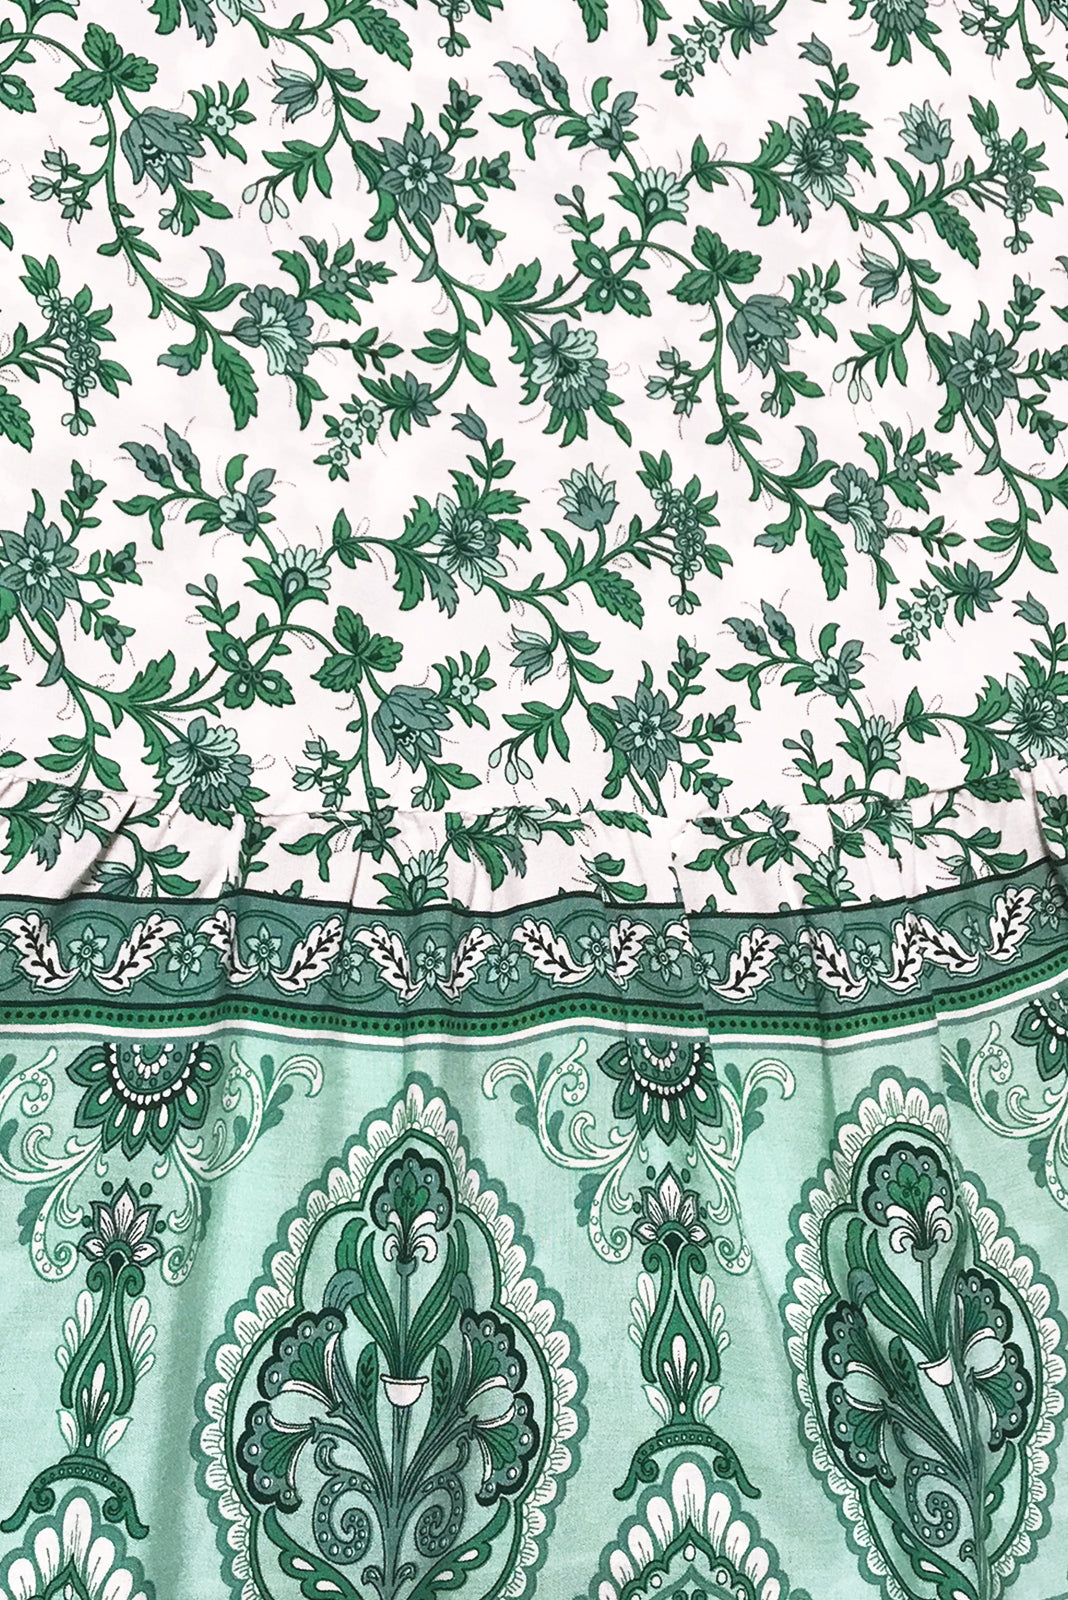 Fabric Swatch of Twilla Fern Green Maxi Dress features white base with intricate mint and green print in woven 100% rayon.